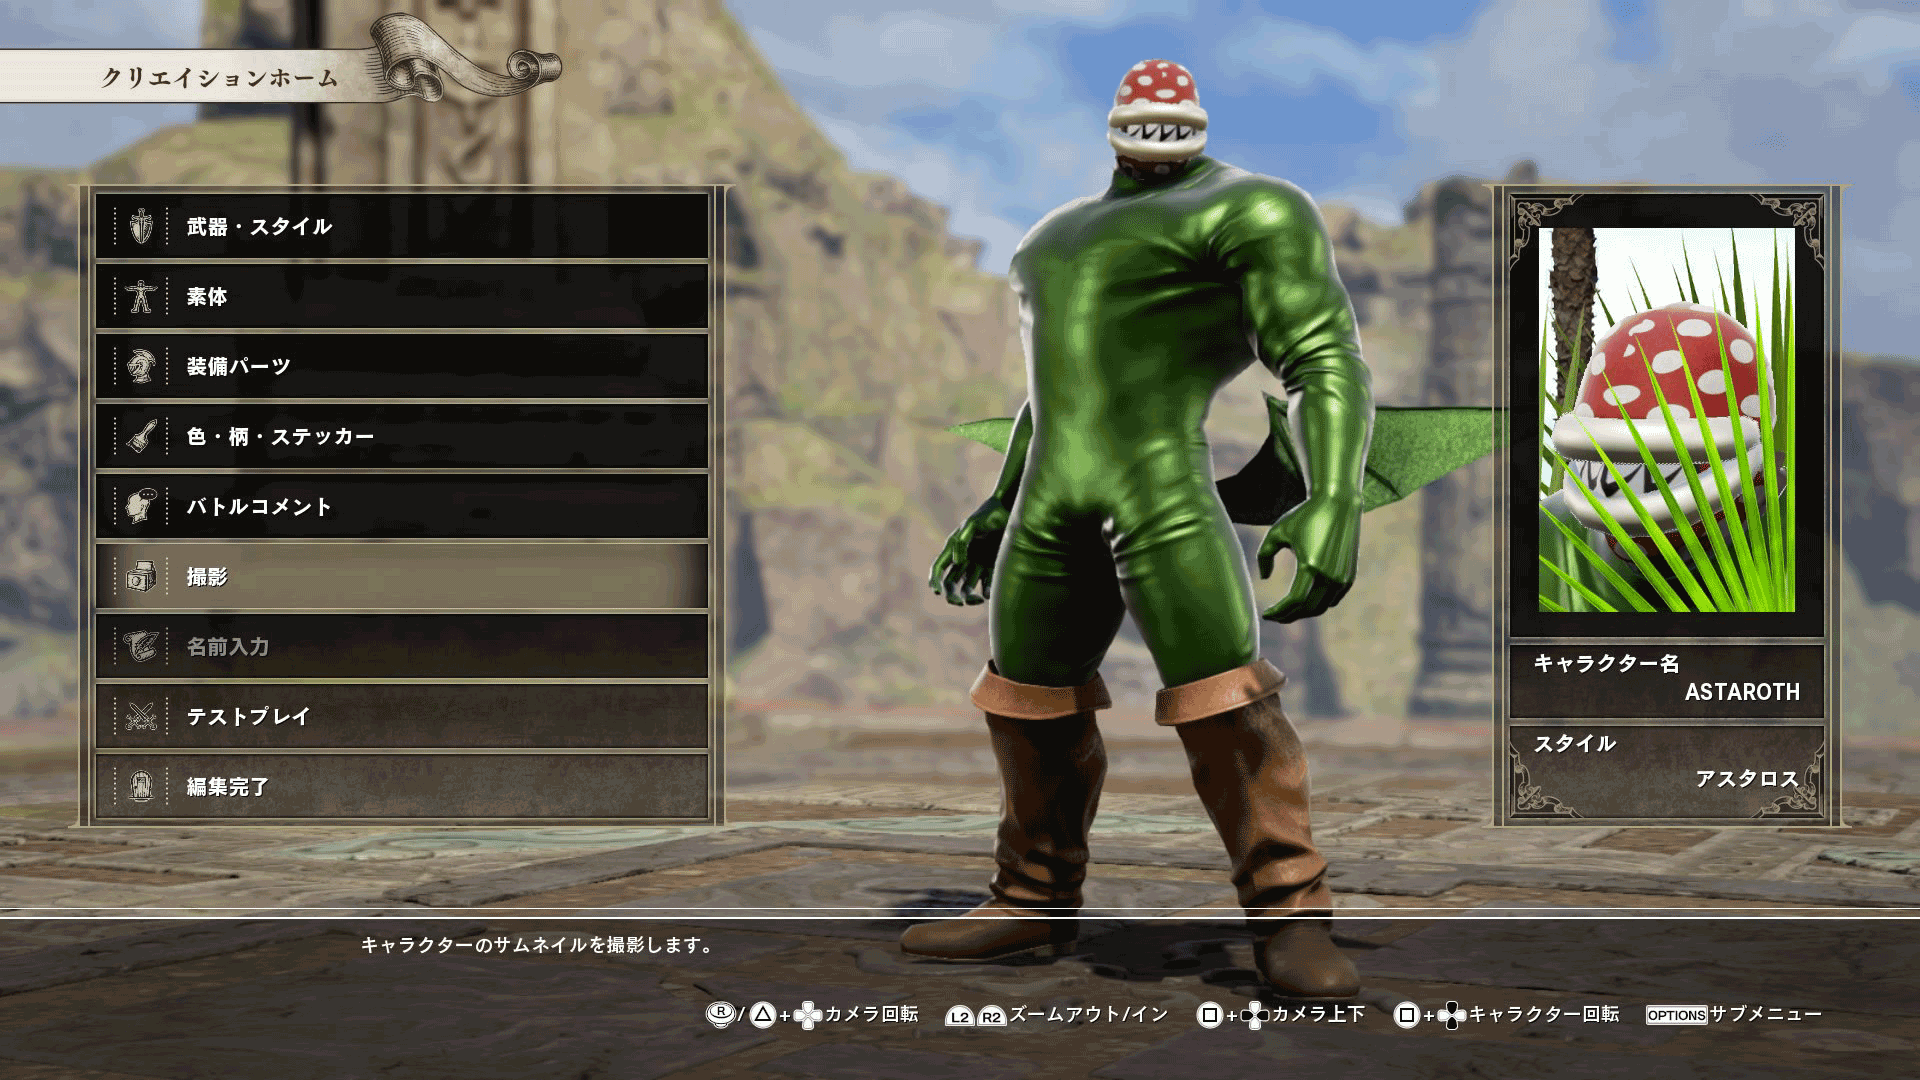 Piranha Plant in Soul Calibur 6 3 out of 5 image gallery